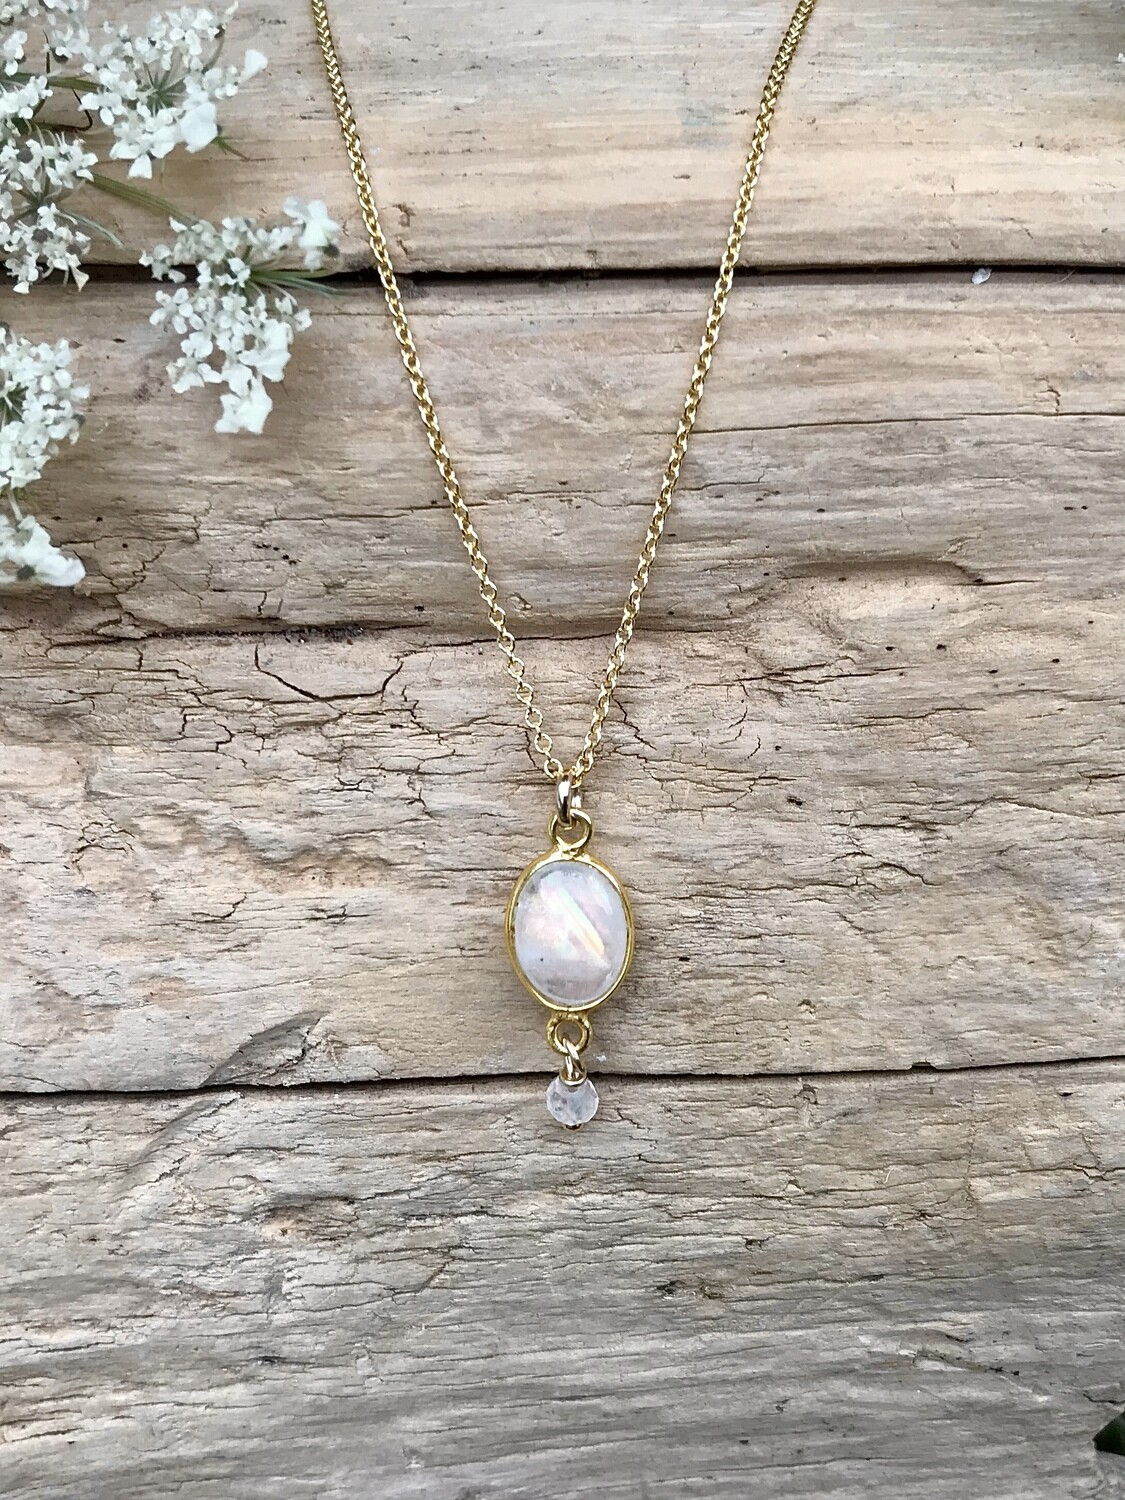 Moonstone Aphrodite Pendant Necklace - GDFDLKN5